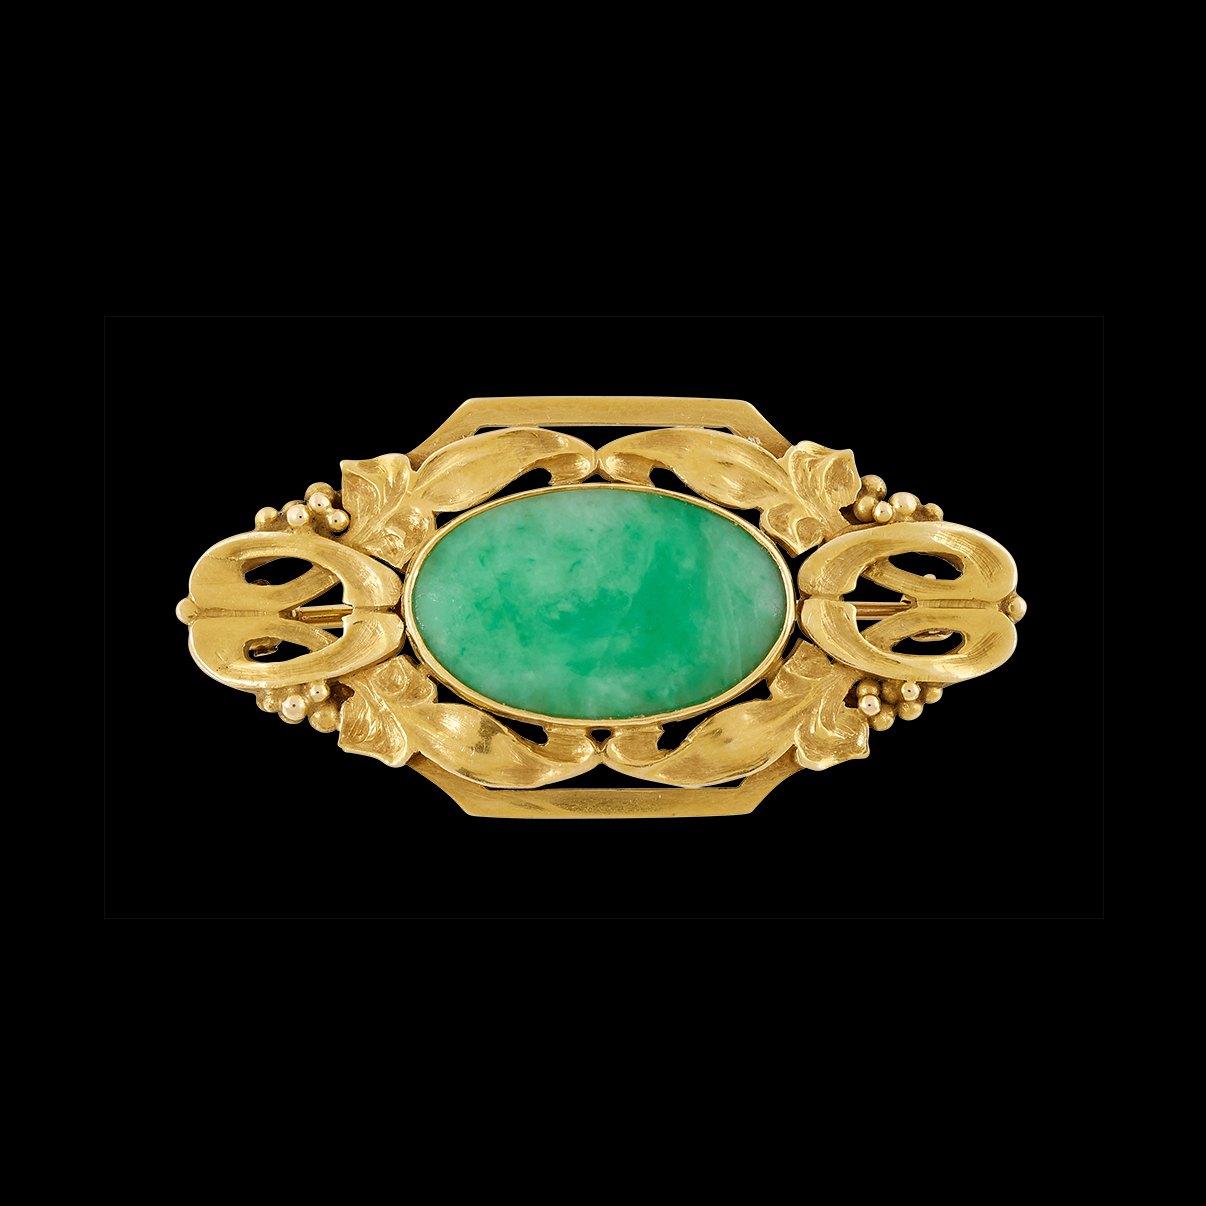 Jewelry and Enamels of the American Arts /& Crafts Movement Creating Beauty